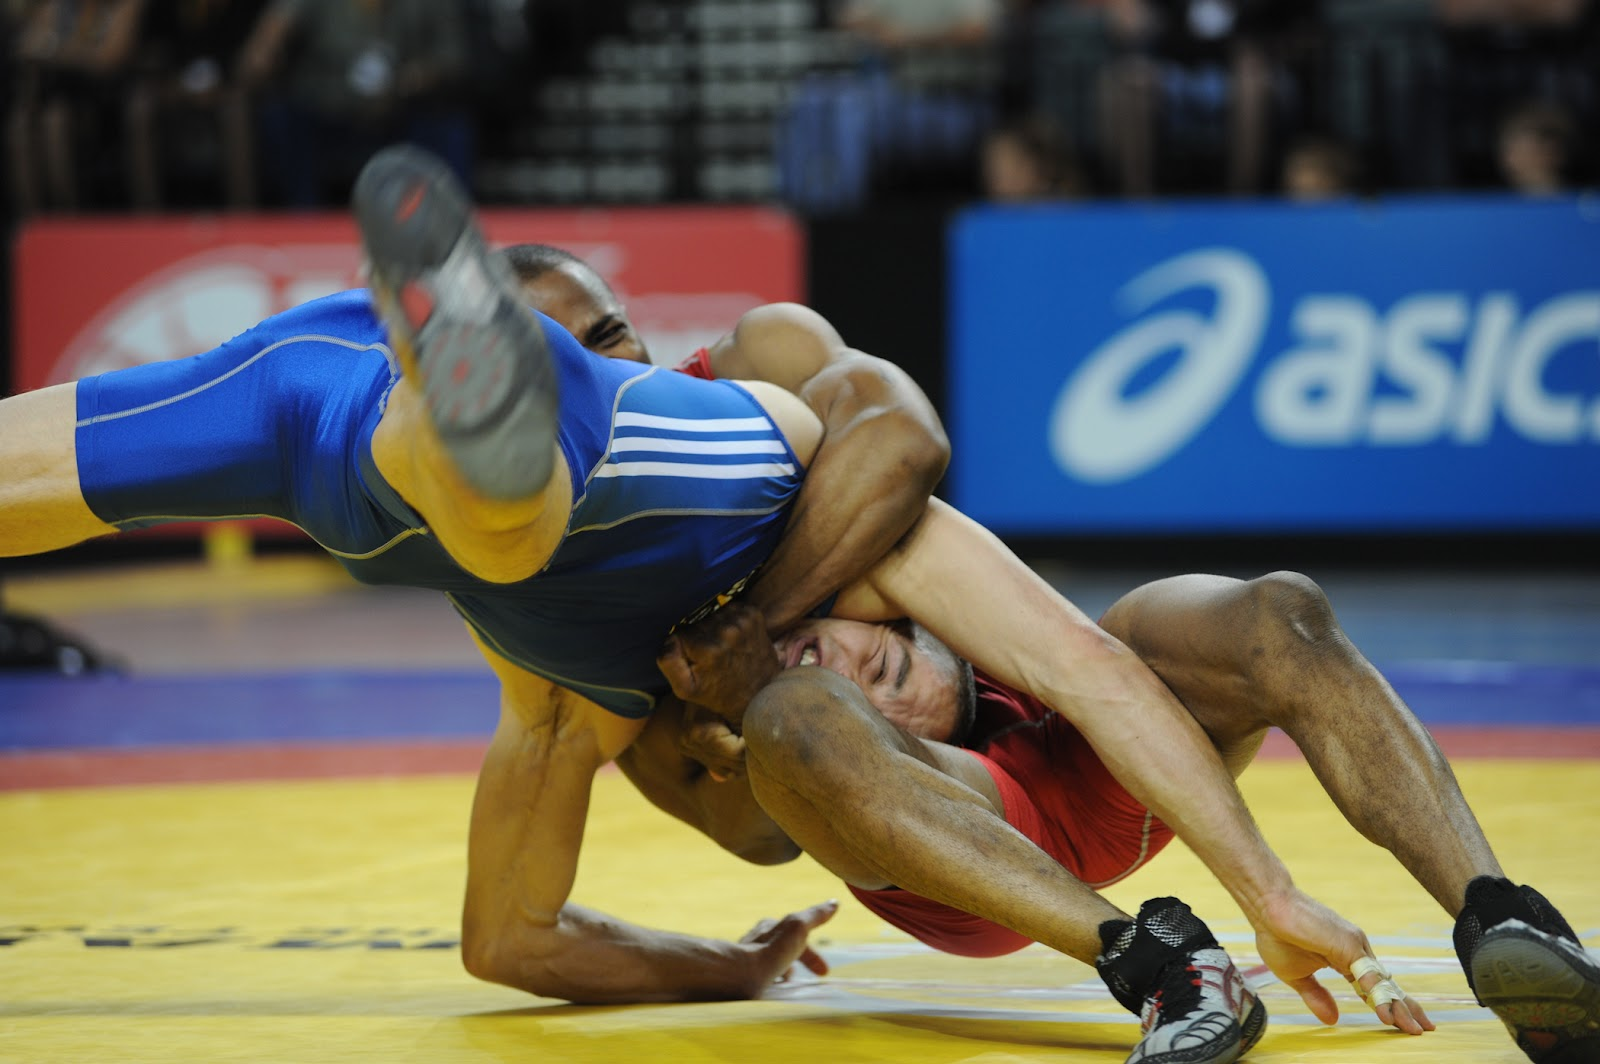 Wrestling mat wallpapers